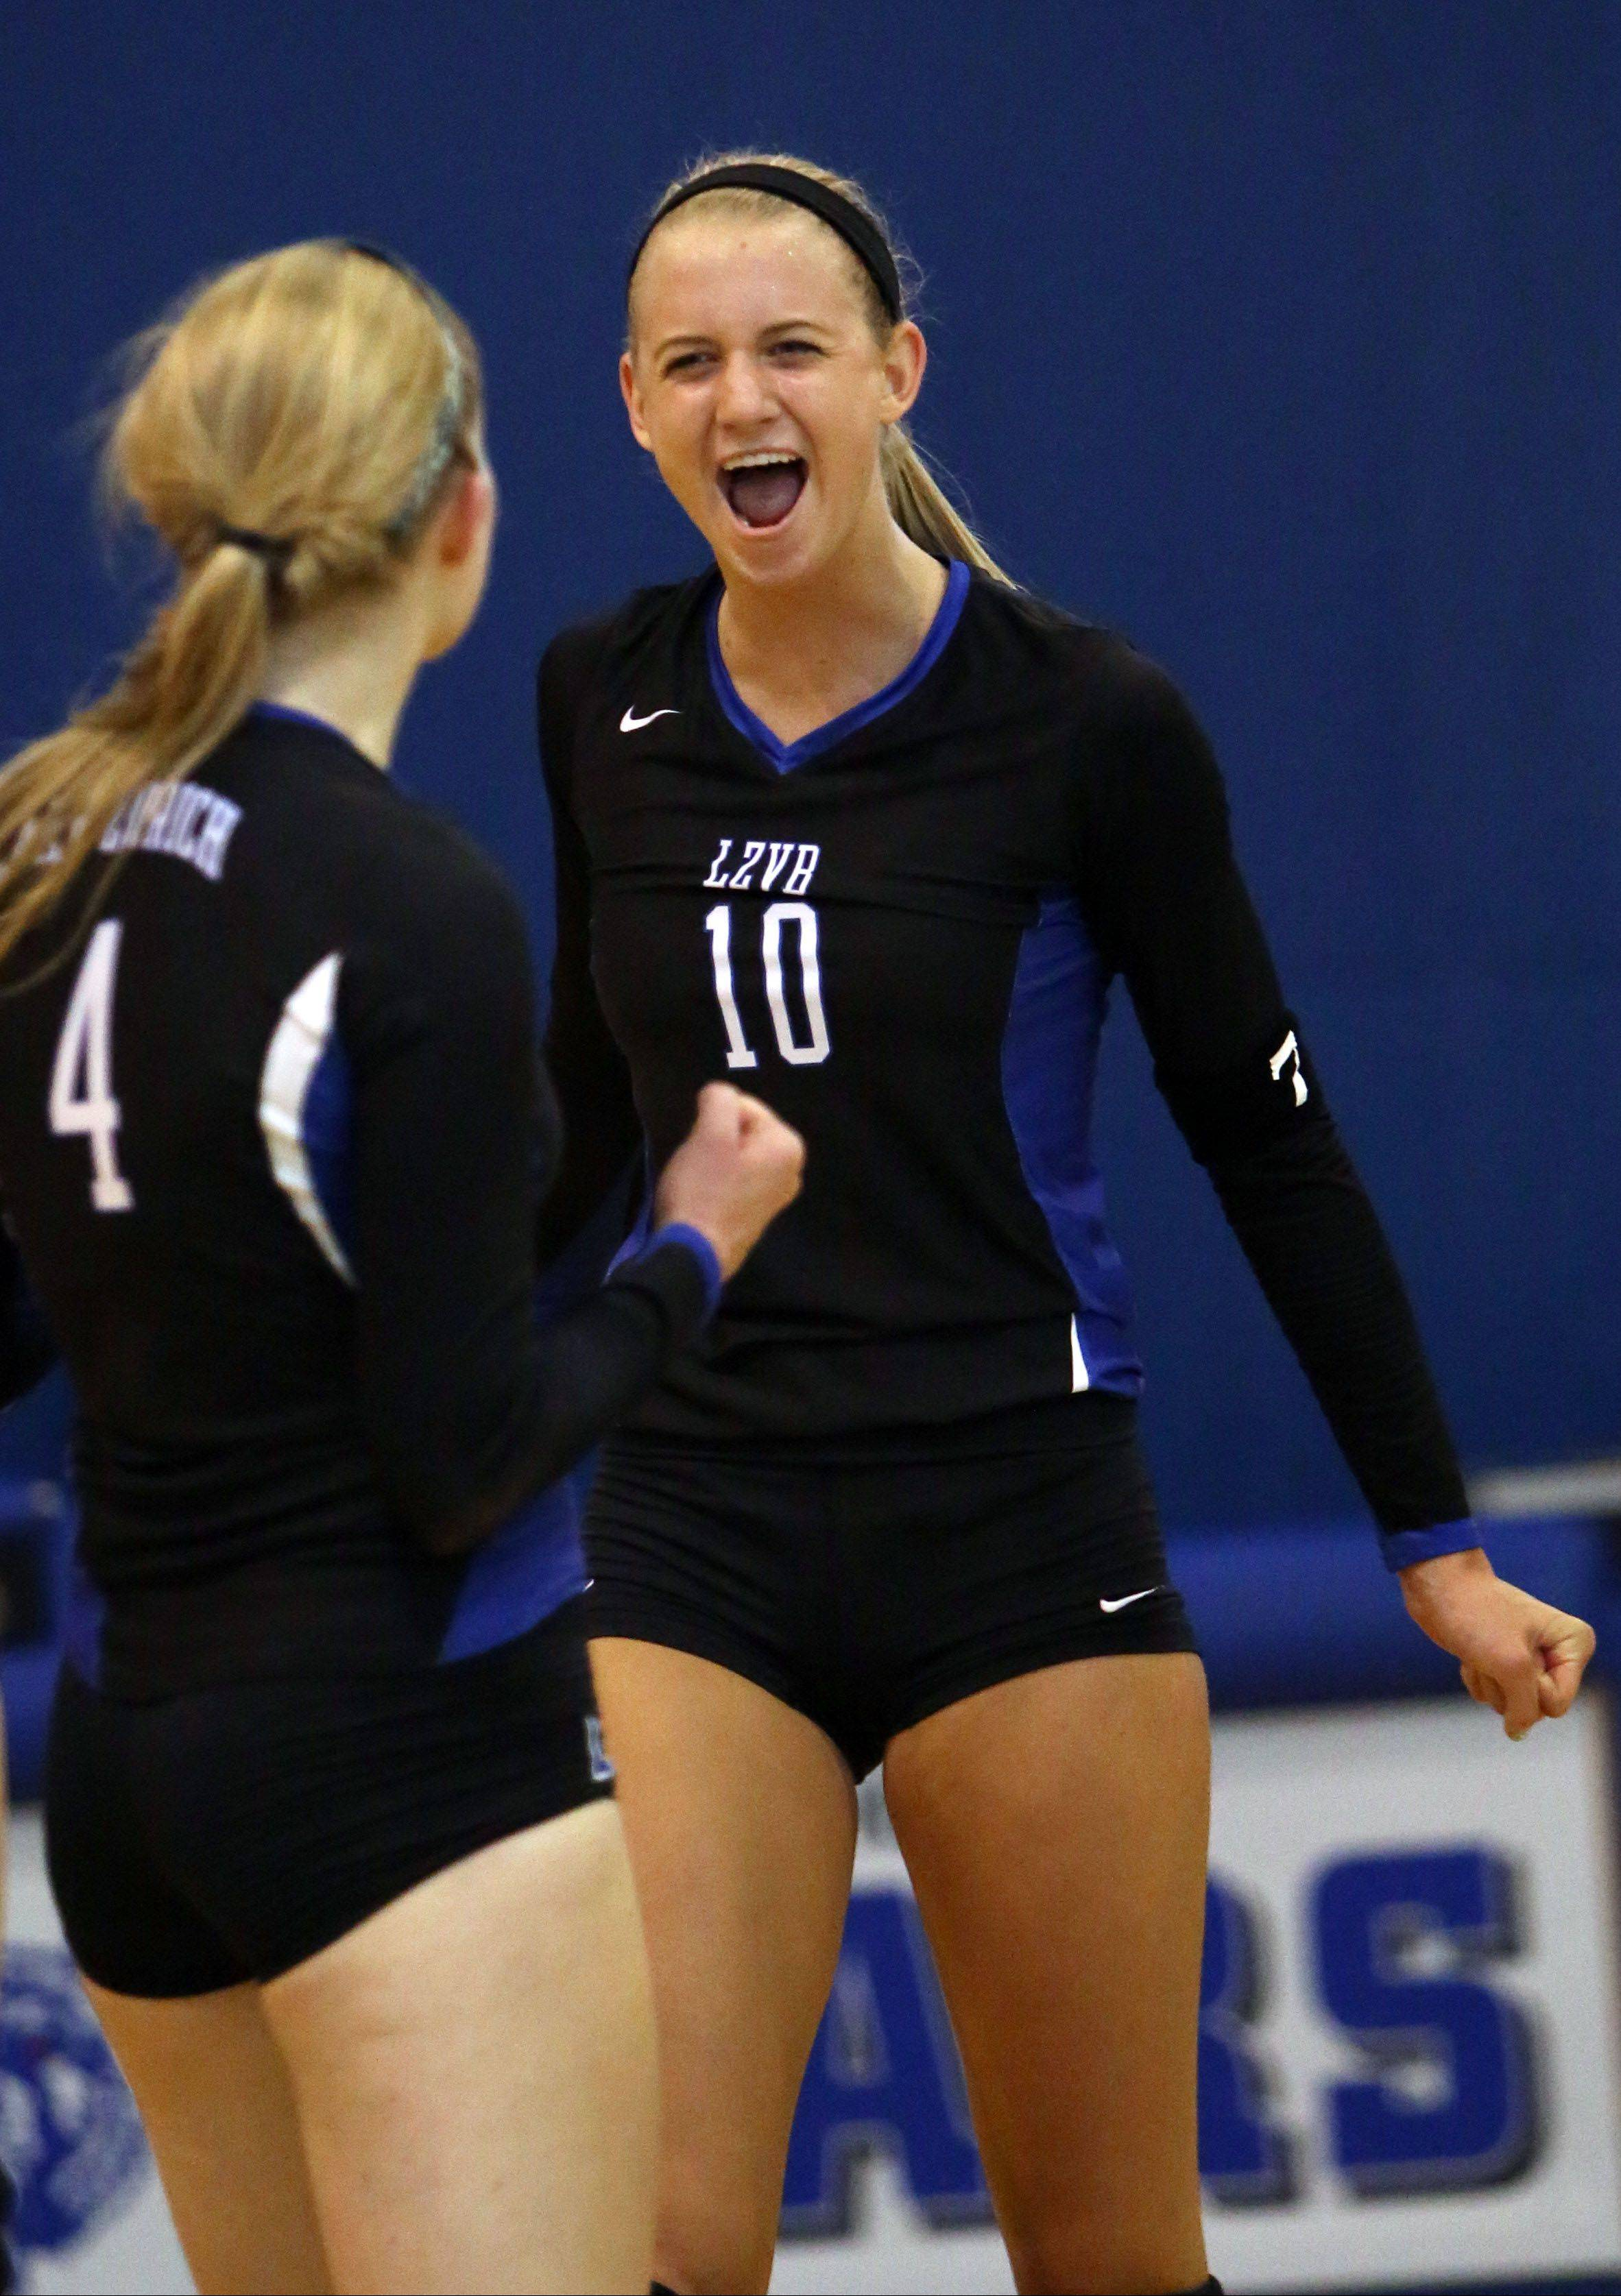 Lake Zurich�s Kristen Walding, right, celebrates with teammate Kiley McPeek after winning a point in a matchup against Carmel.